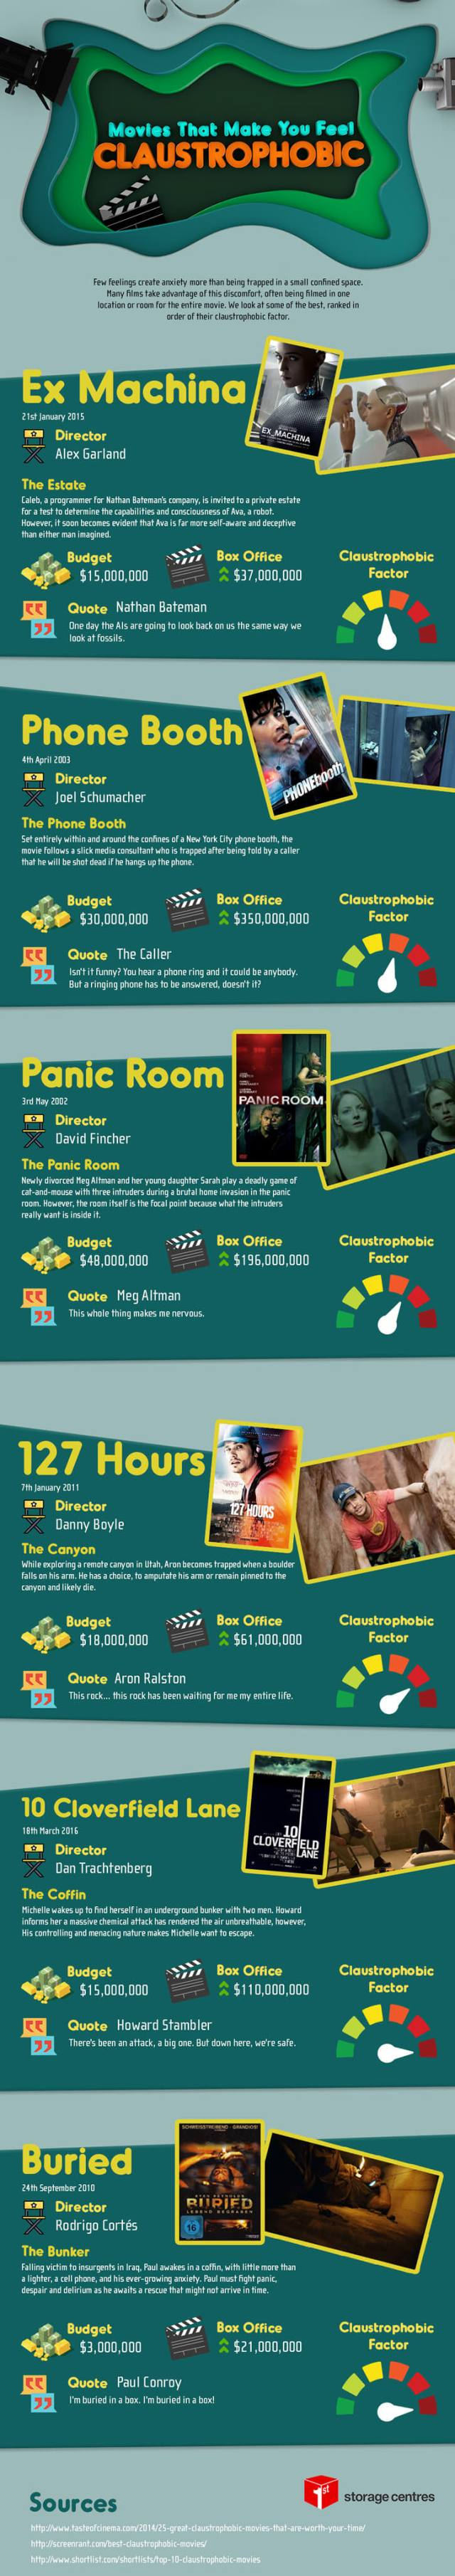 Movies that Make You Feel Claustrophobic